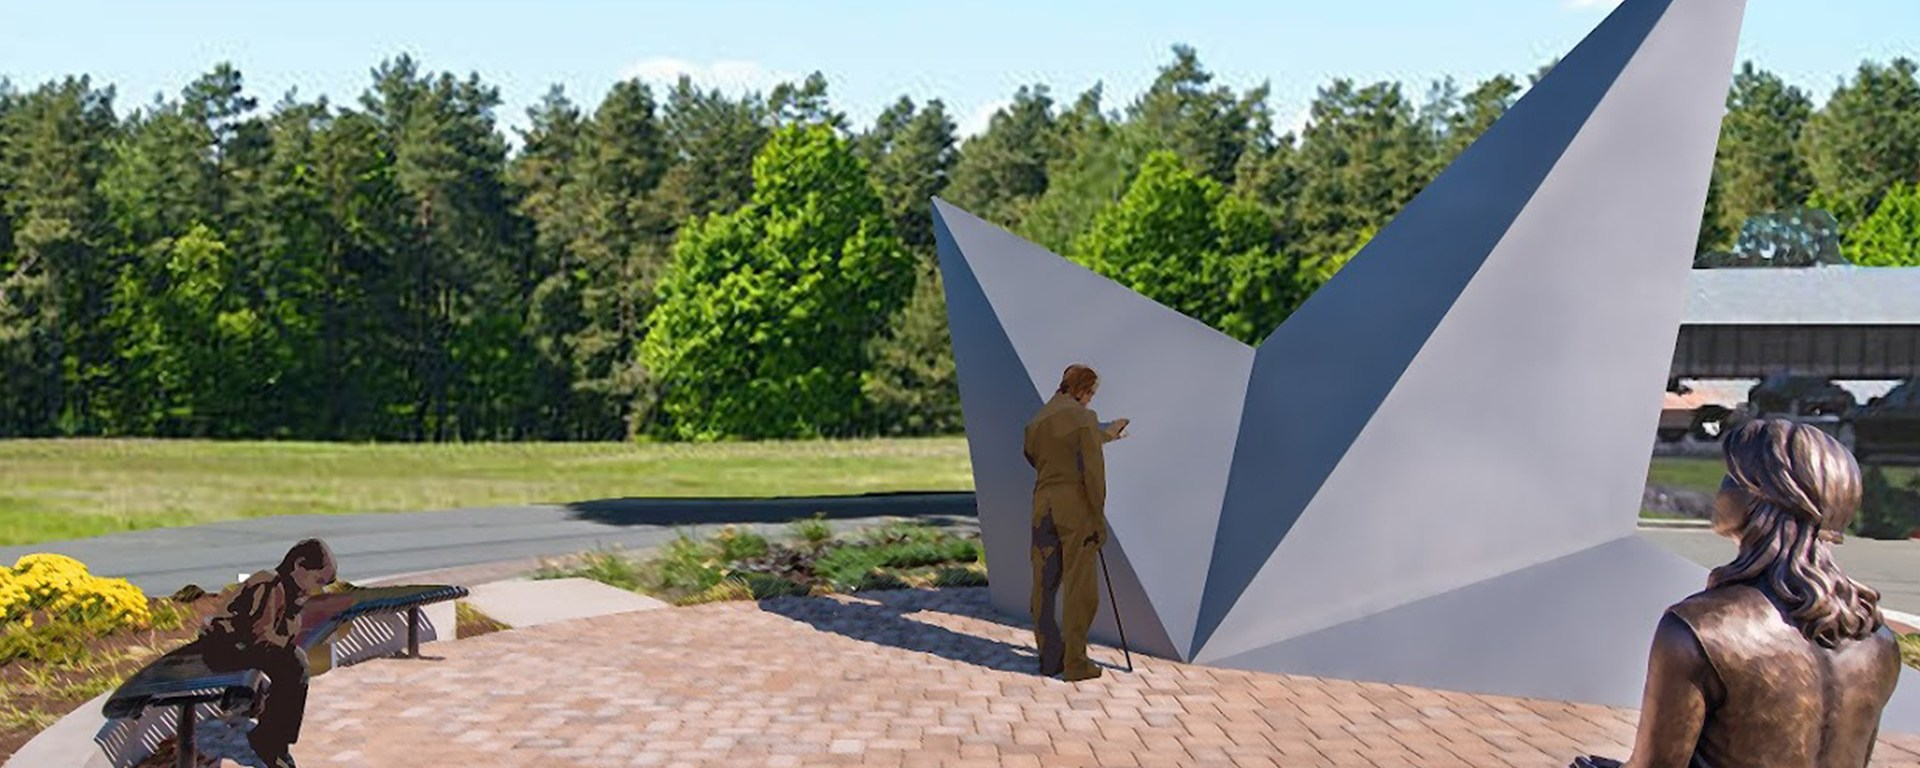 connecticut fallen star memorial